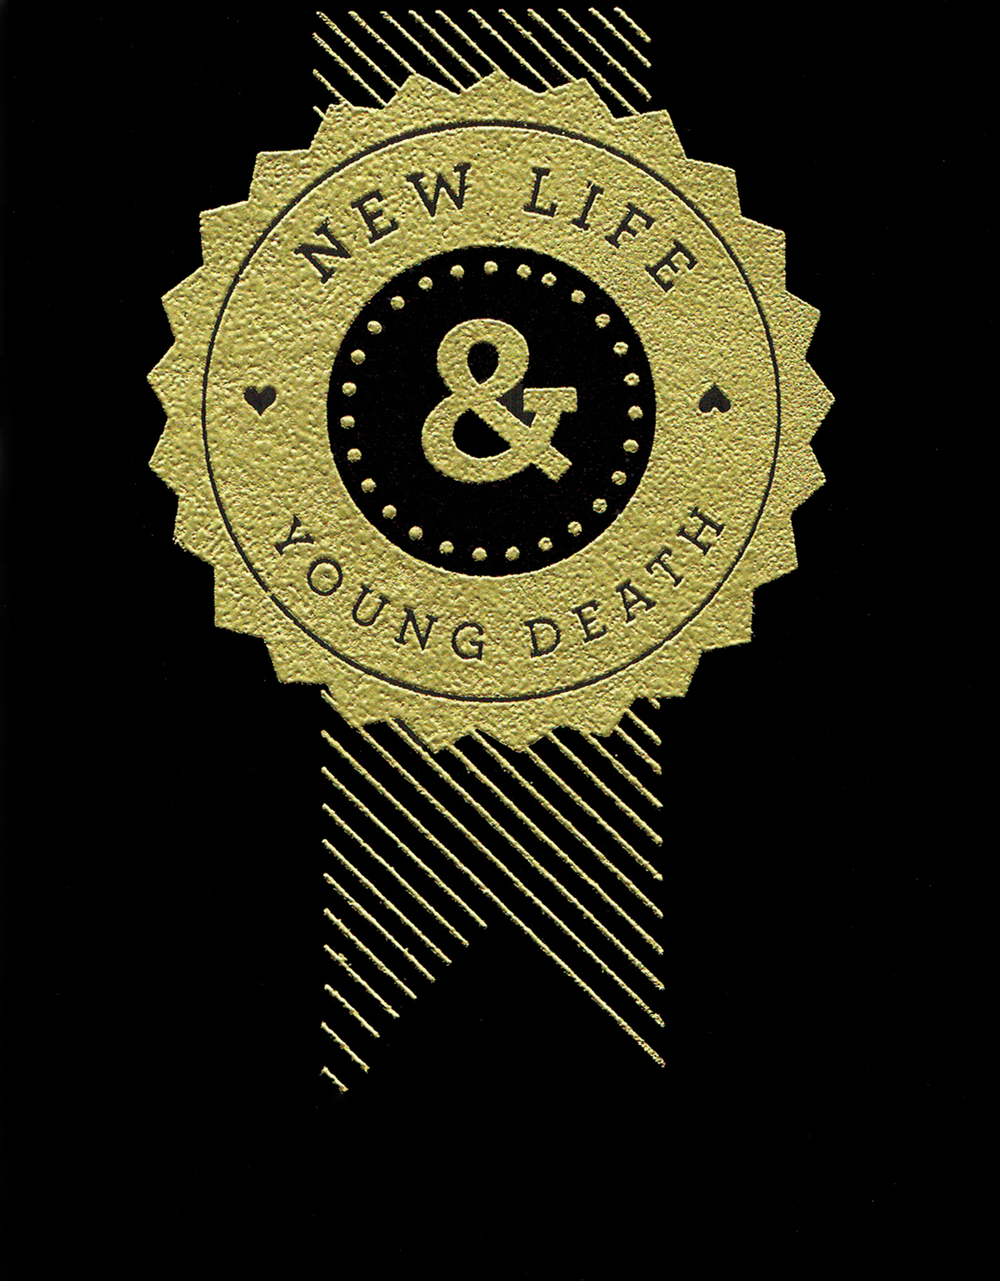 """New Life & Young Death"" by Kate Thomas"